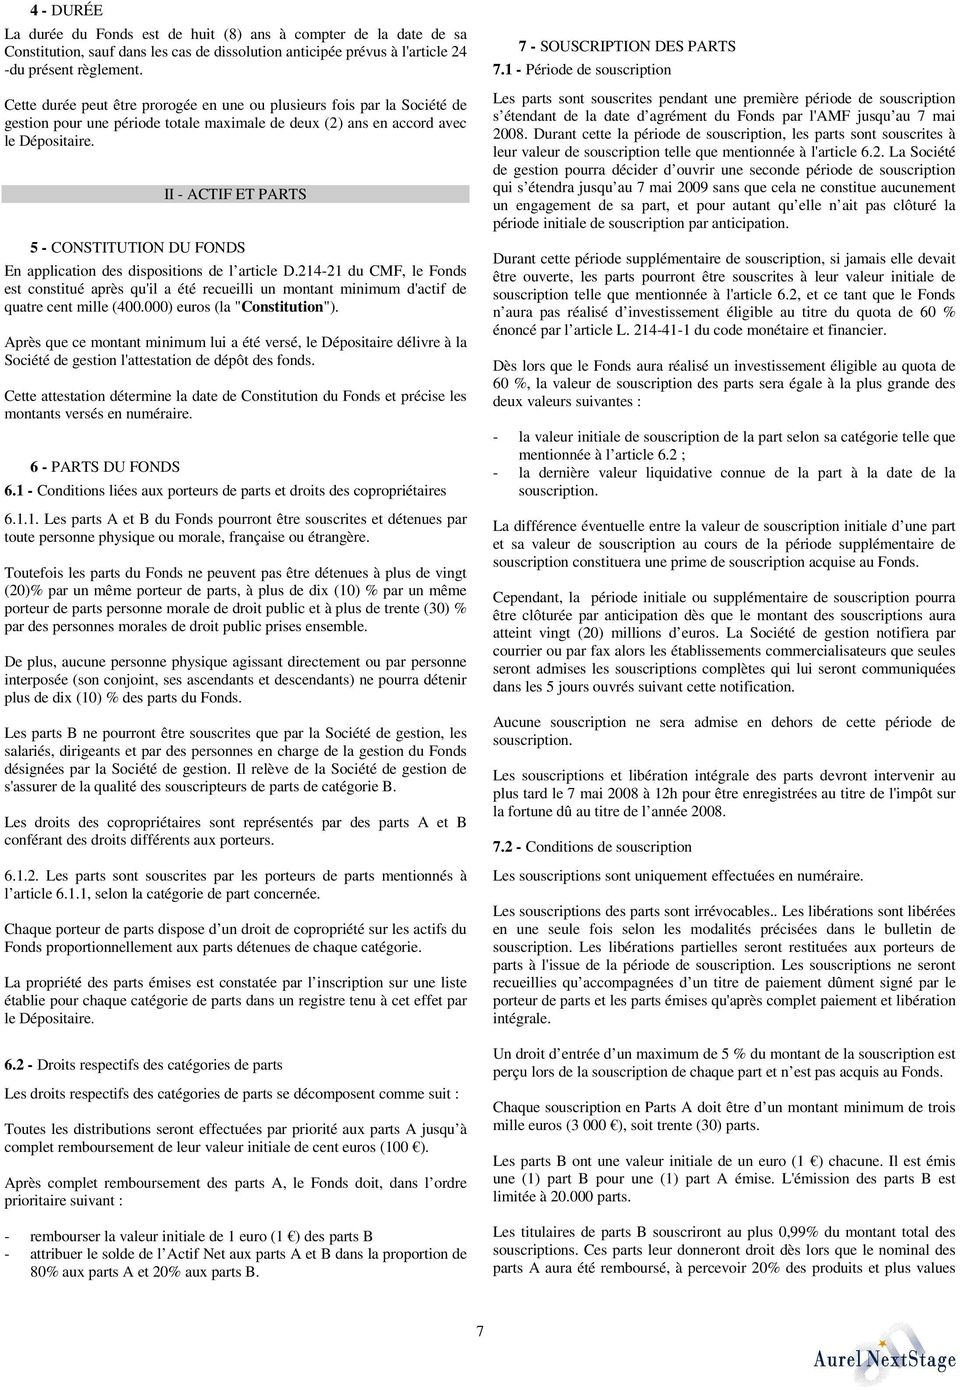 II - ACTIF ET PARTS 5 - CONSTITUTION DU FONDS En application des dispositions de l article D.